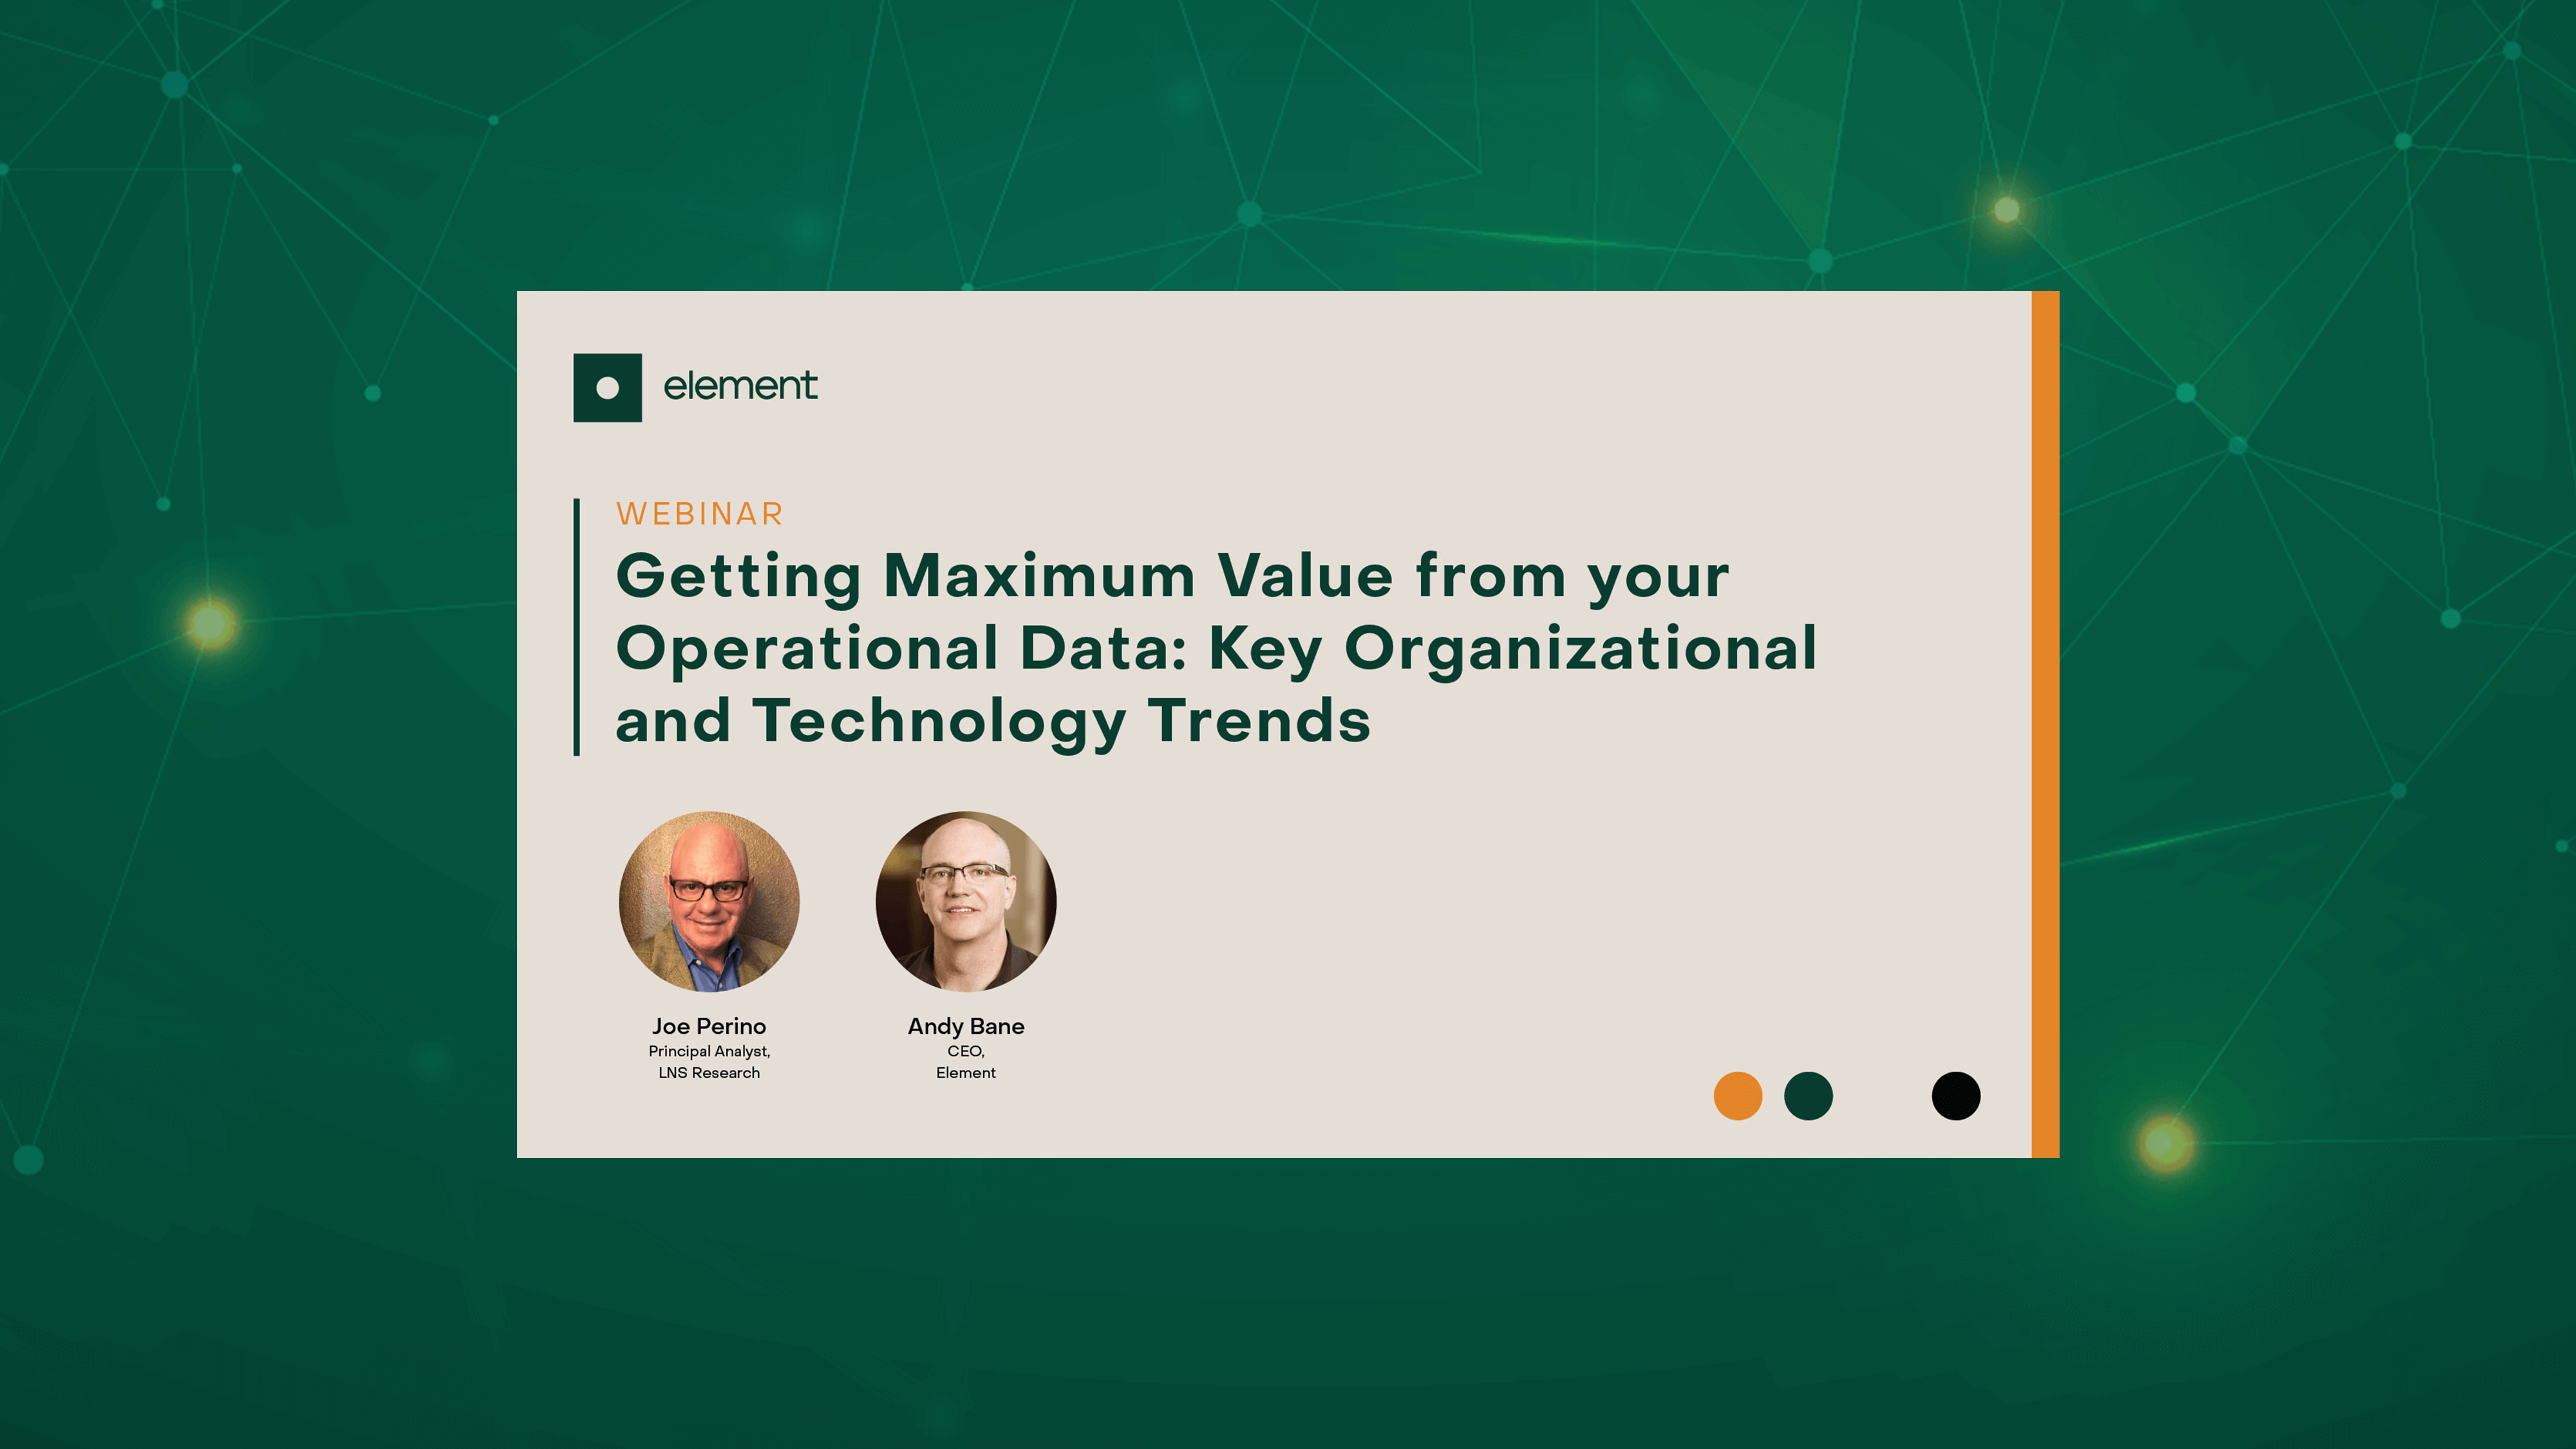 Maximize the value of your Operational Data – It's Too Valuable an Asset Not to!